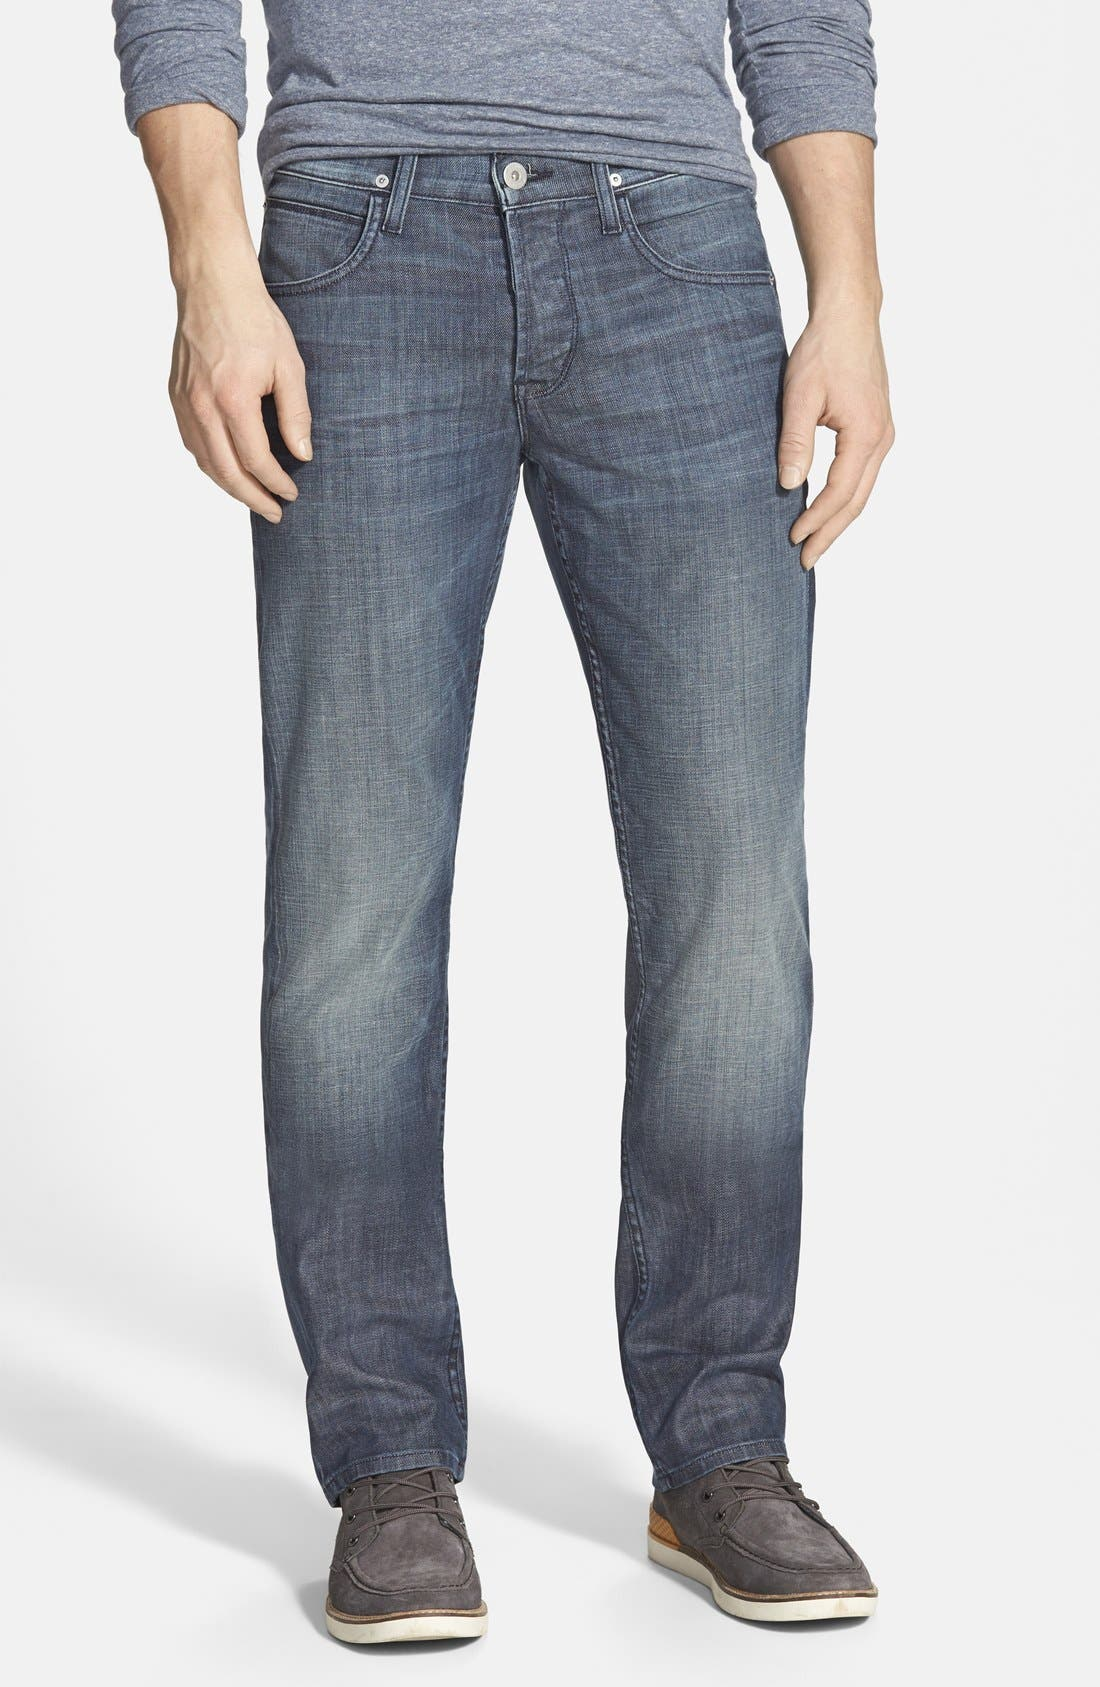 Alternate Image 1 Selected - Hudson Jeans 'Byron' Slim Straight Leg Jeans (Commander)